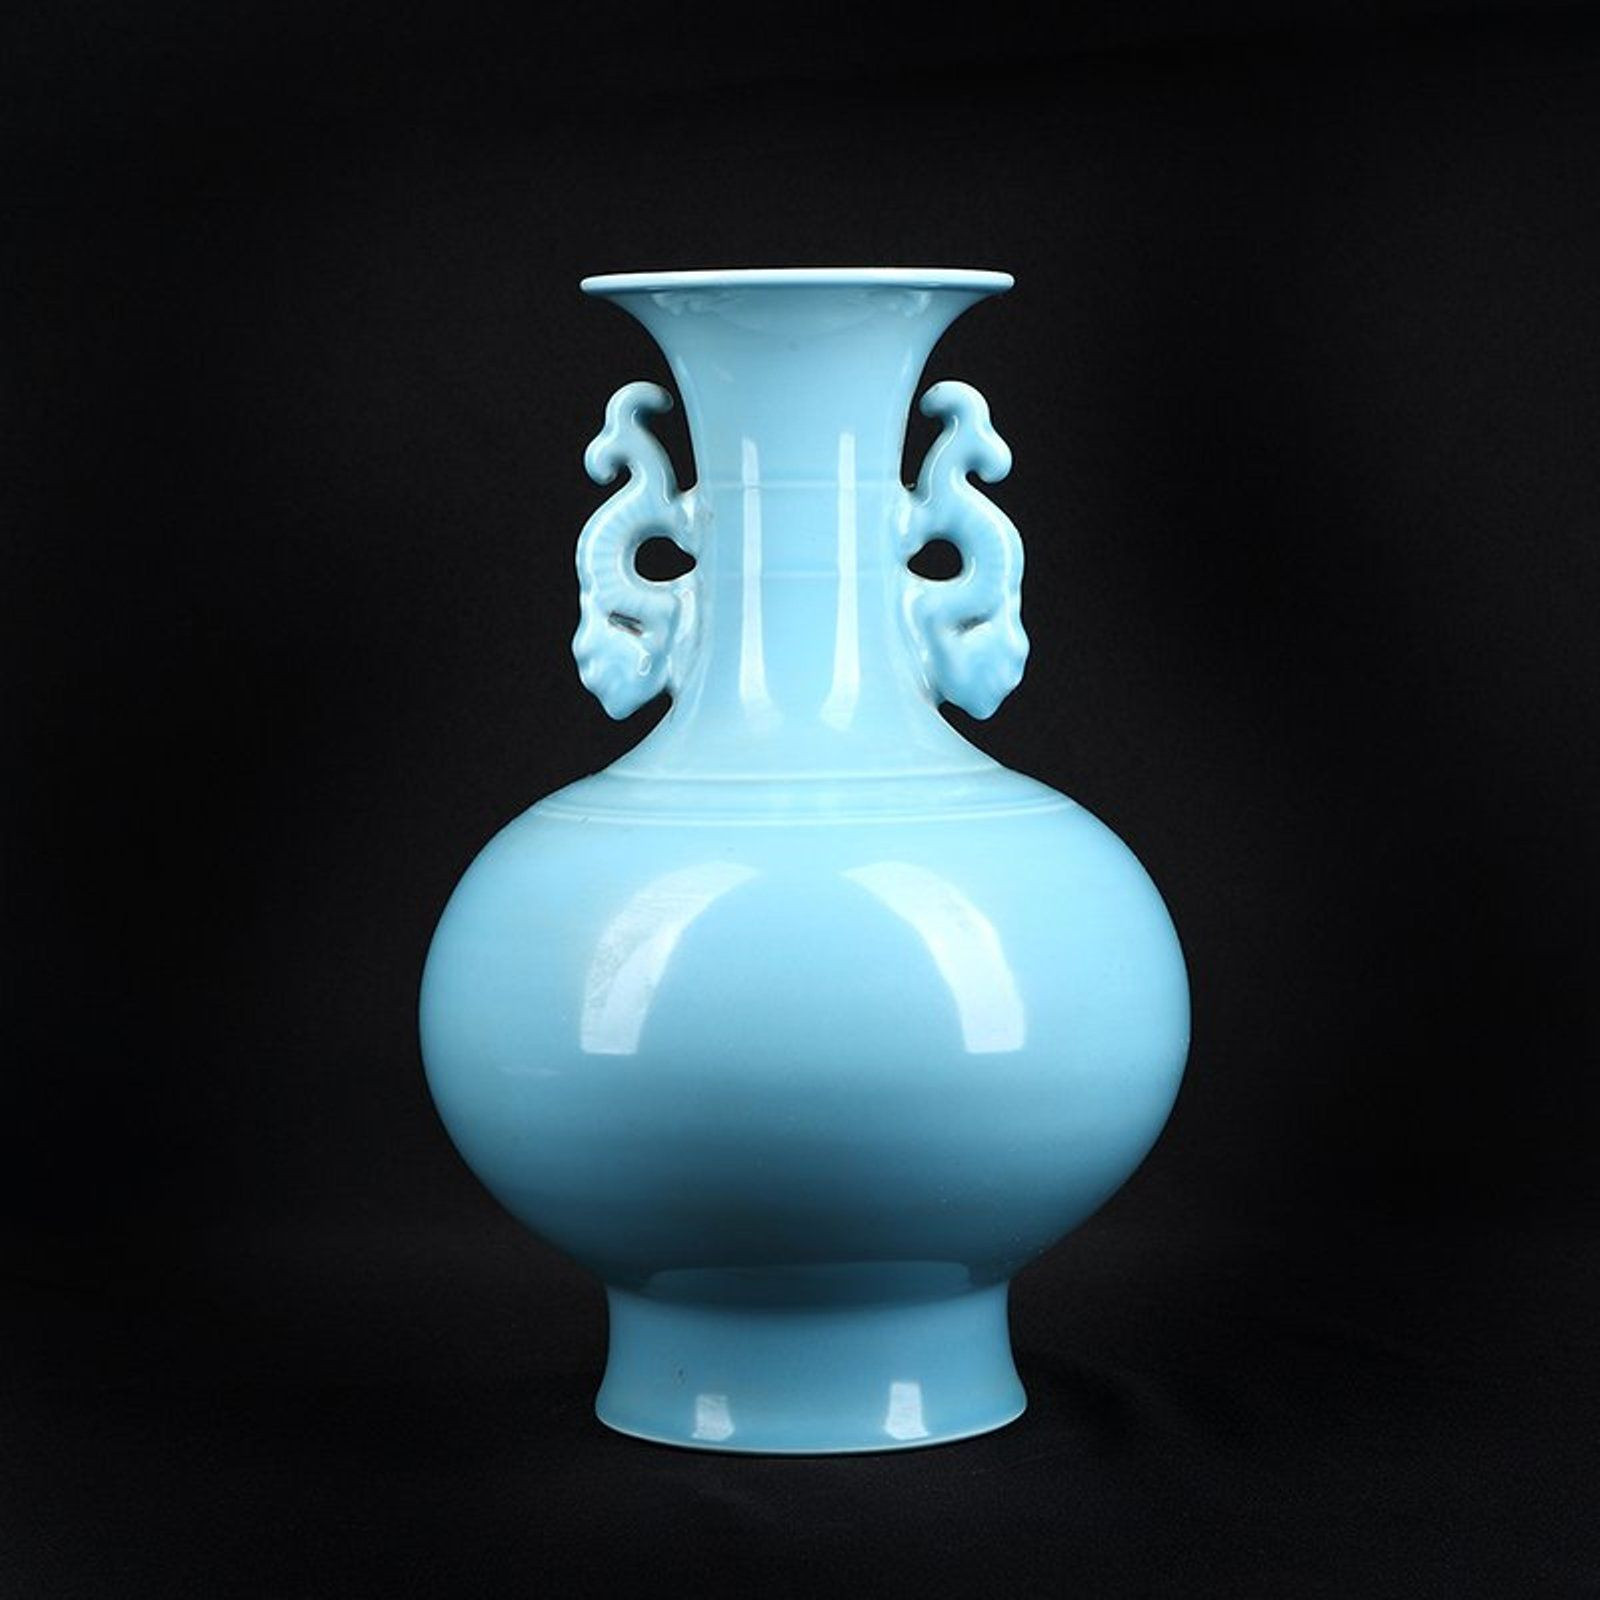 Pale Blue Vase Of 33 Elegant Celadon Art Creative Lighting Ideas for Home Regarding Chinese Pale Celadon Porcelain Bottle Vase Qianlong Make